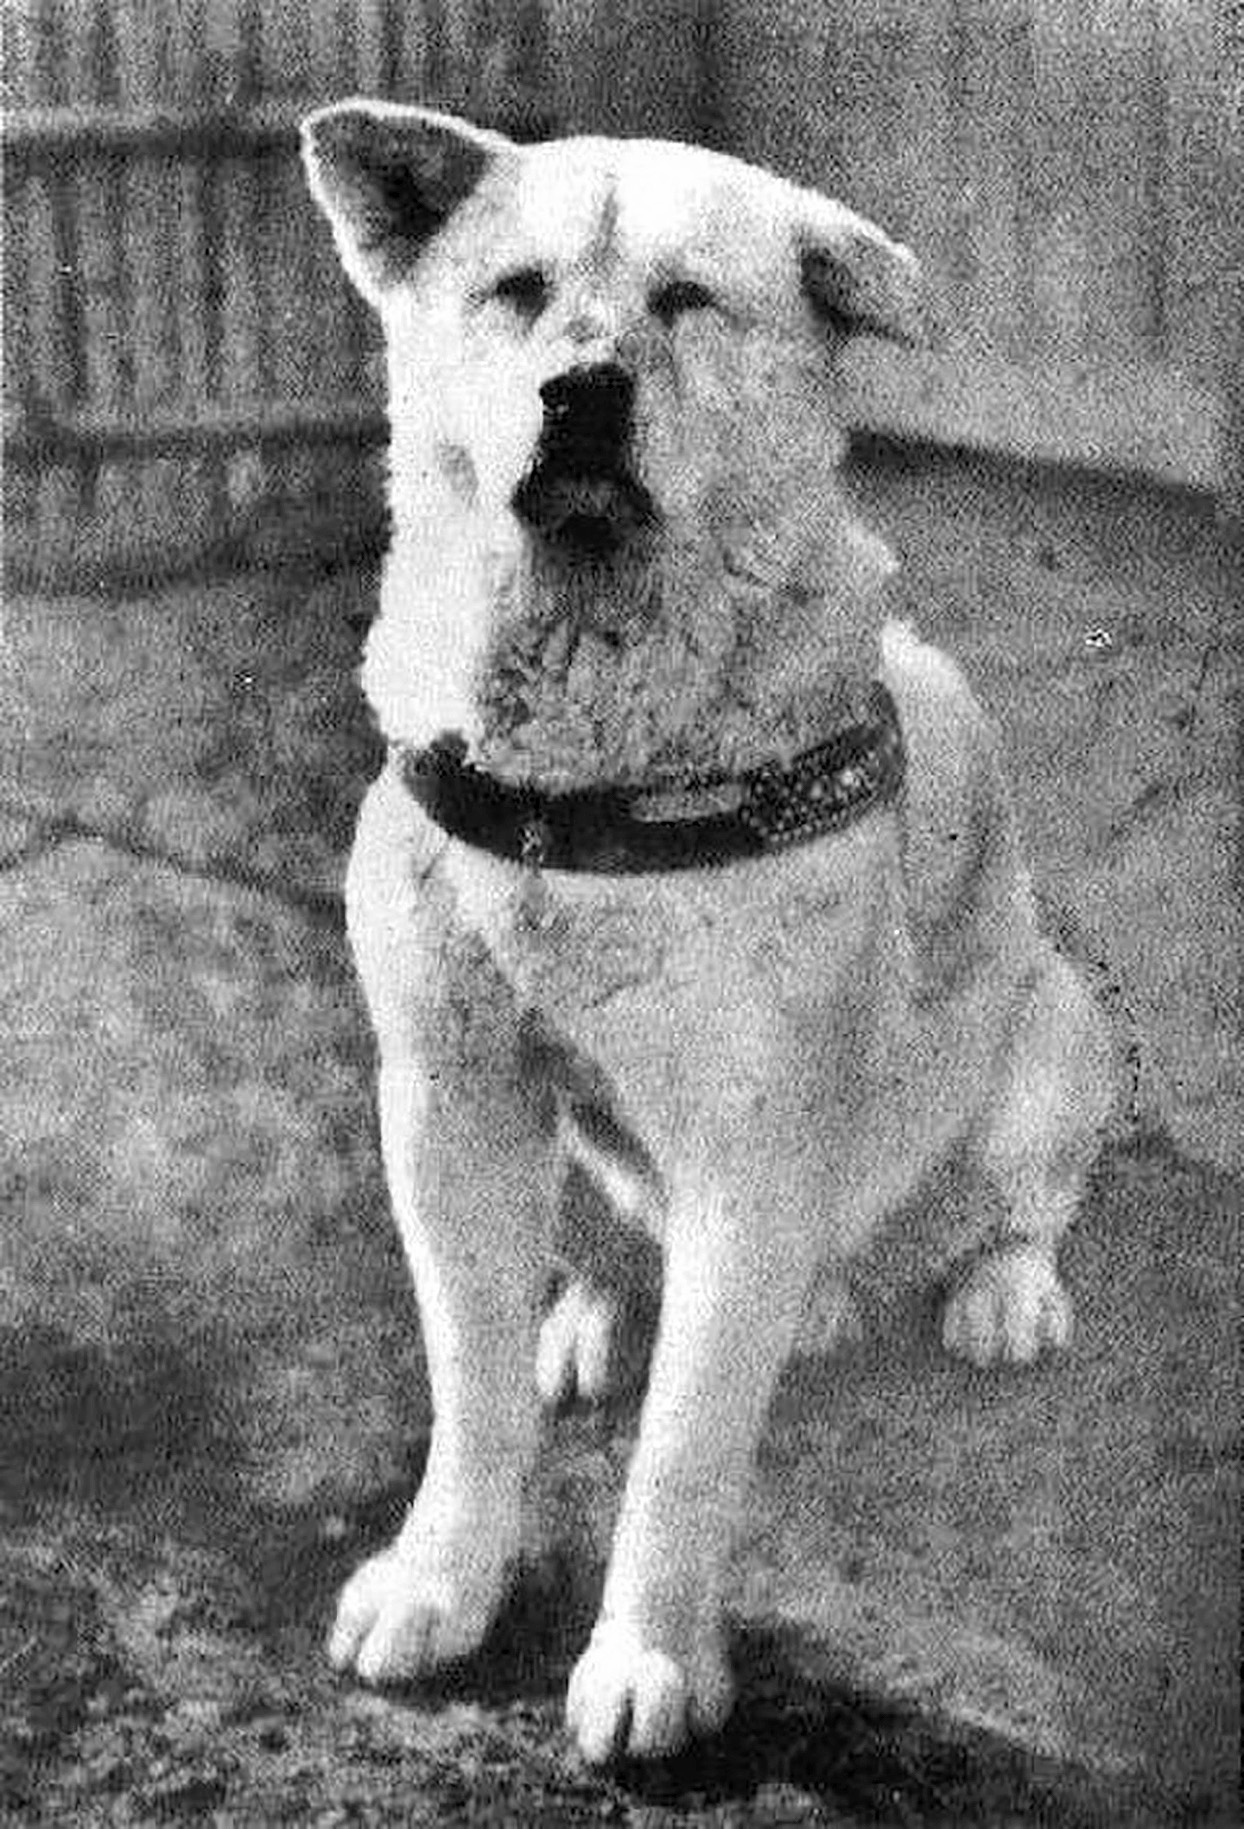 Hachikō (1935) was a Japanese Akita dog remembered for his remarkable loyalty to his owner for whom he continued to wait for over nine years following Ueno's death